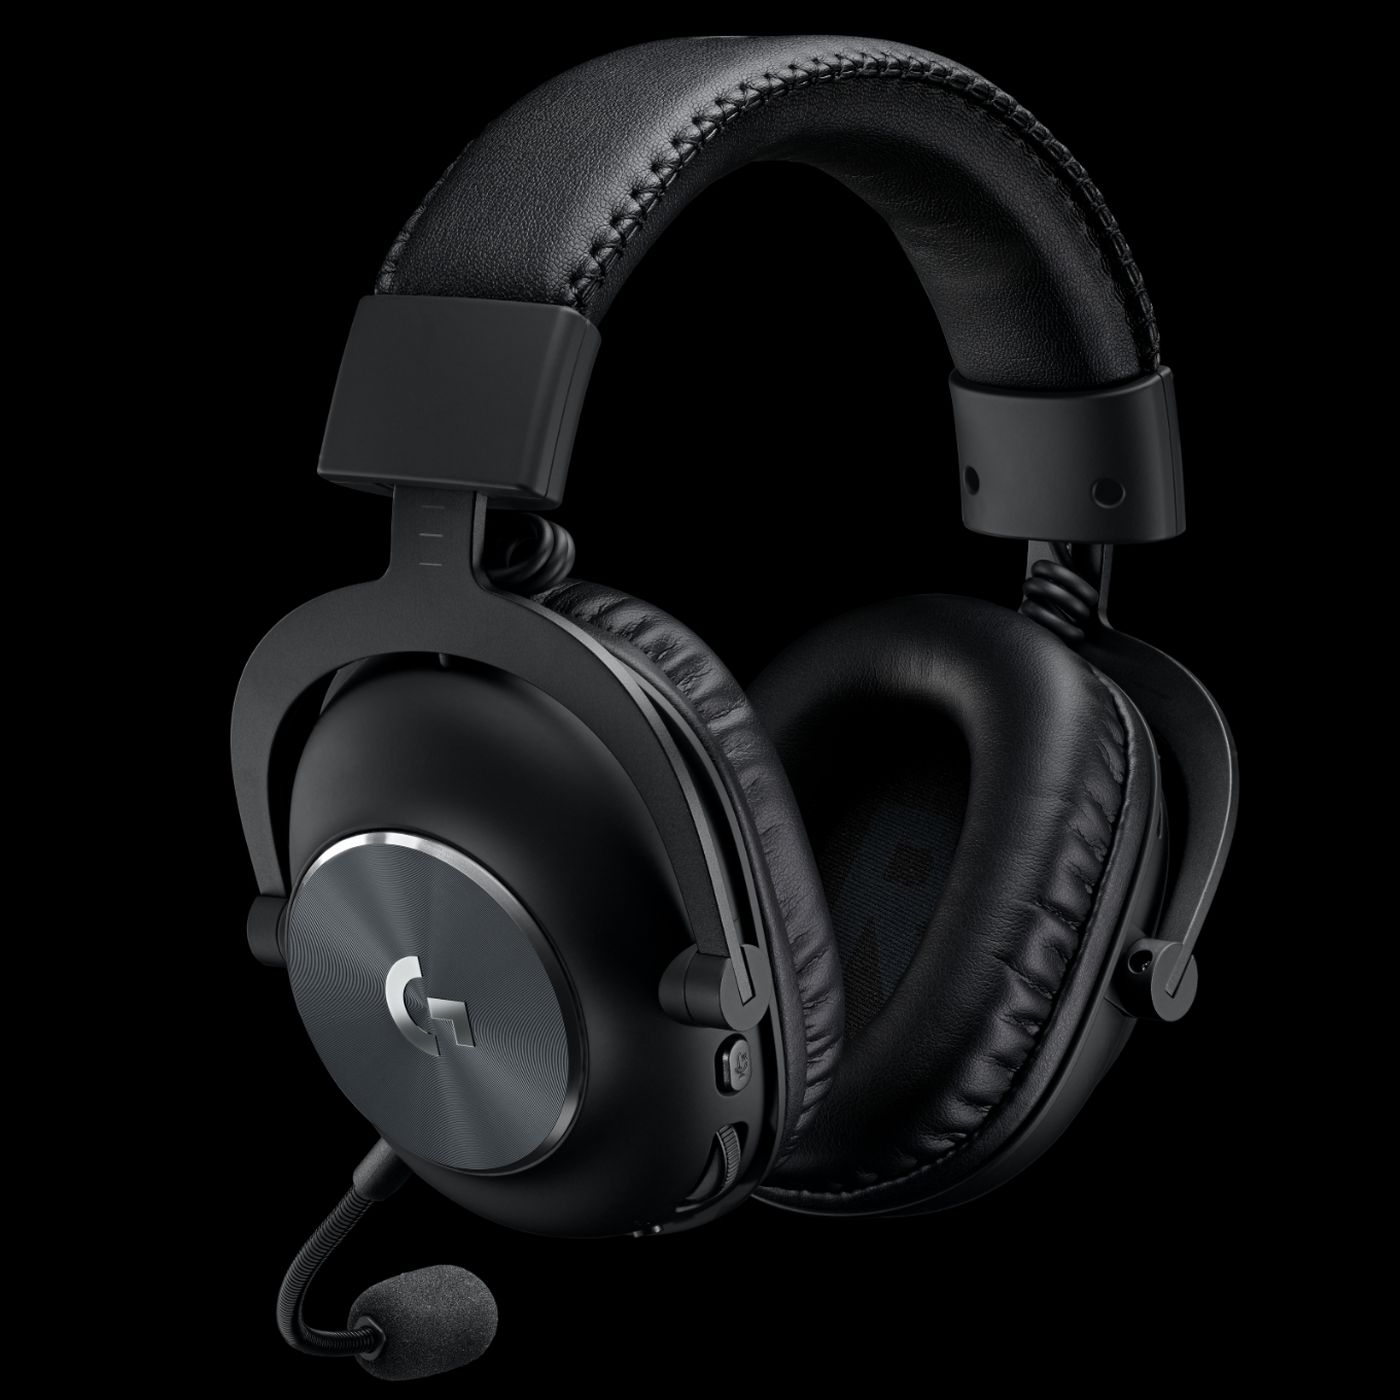 Logitech S New Pro X Lightspeed Is Its Latest Gaming Headset To Go